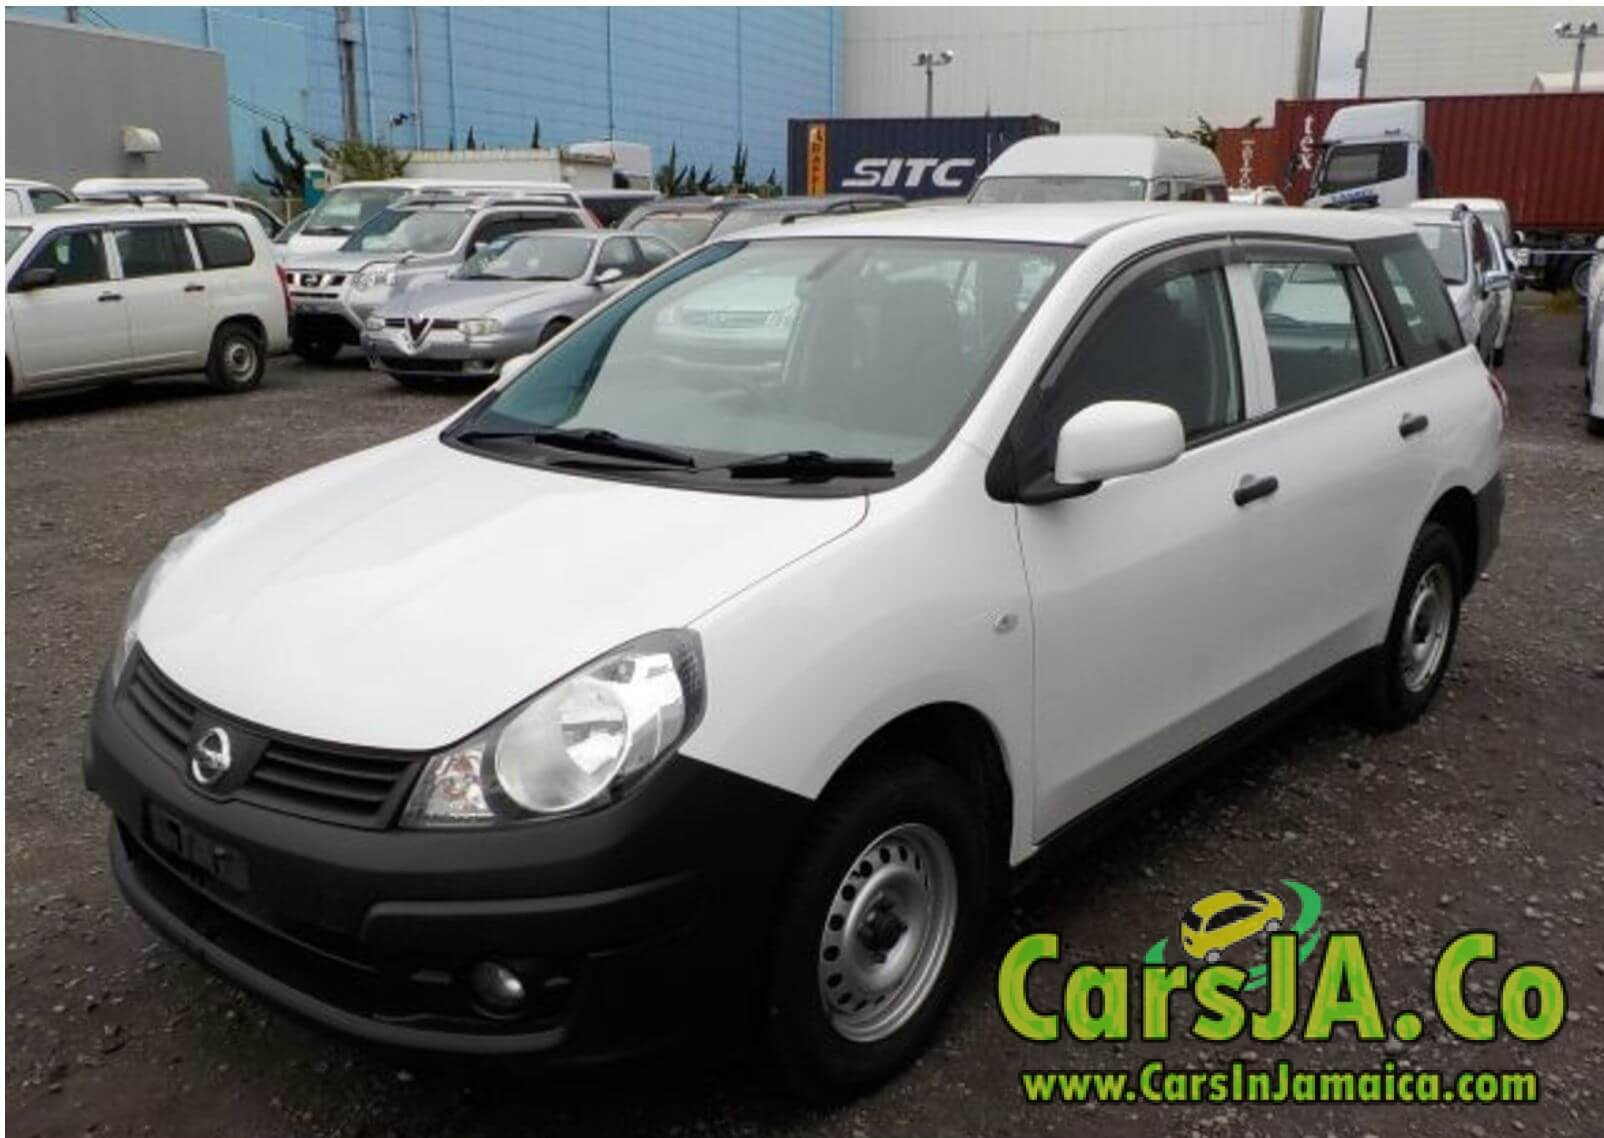 Cars For Sale In Jamaica With Financing: 2012 NISSAN AD VAN For Sale In Jamaica